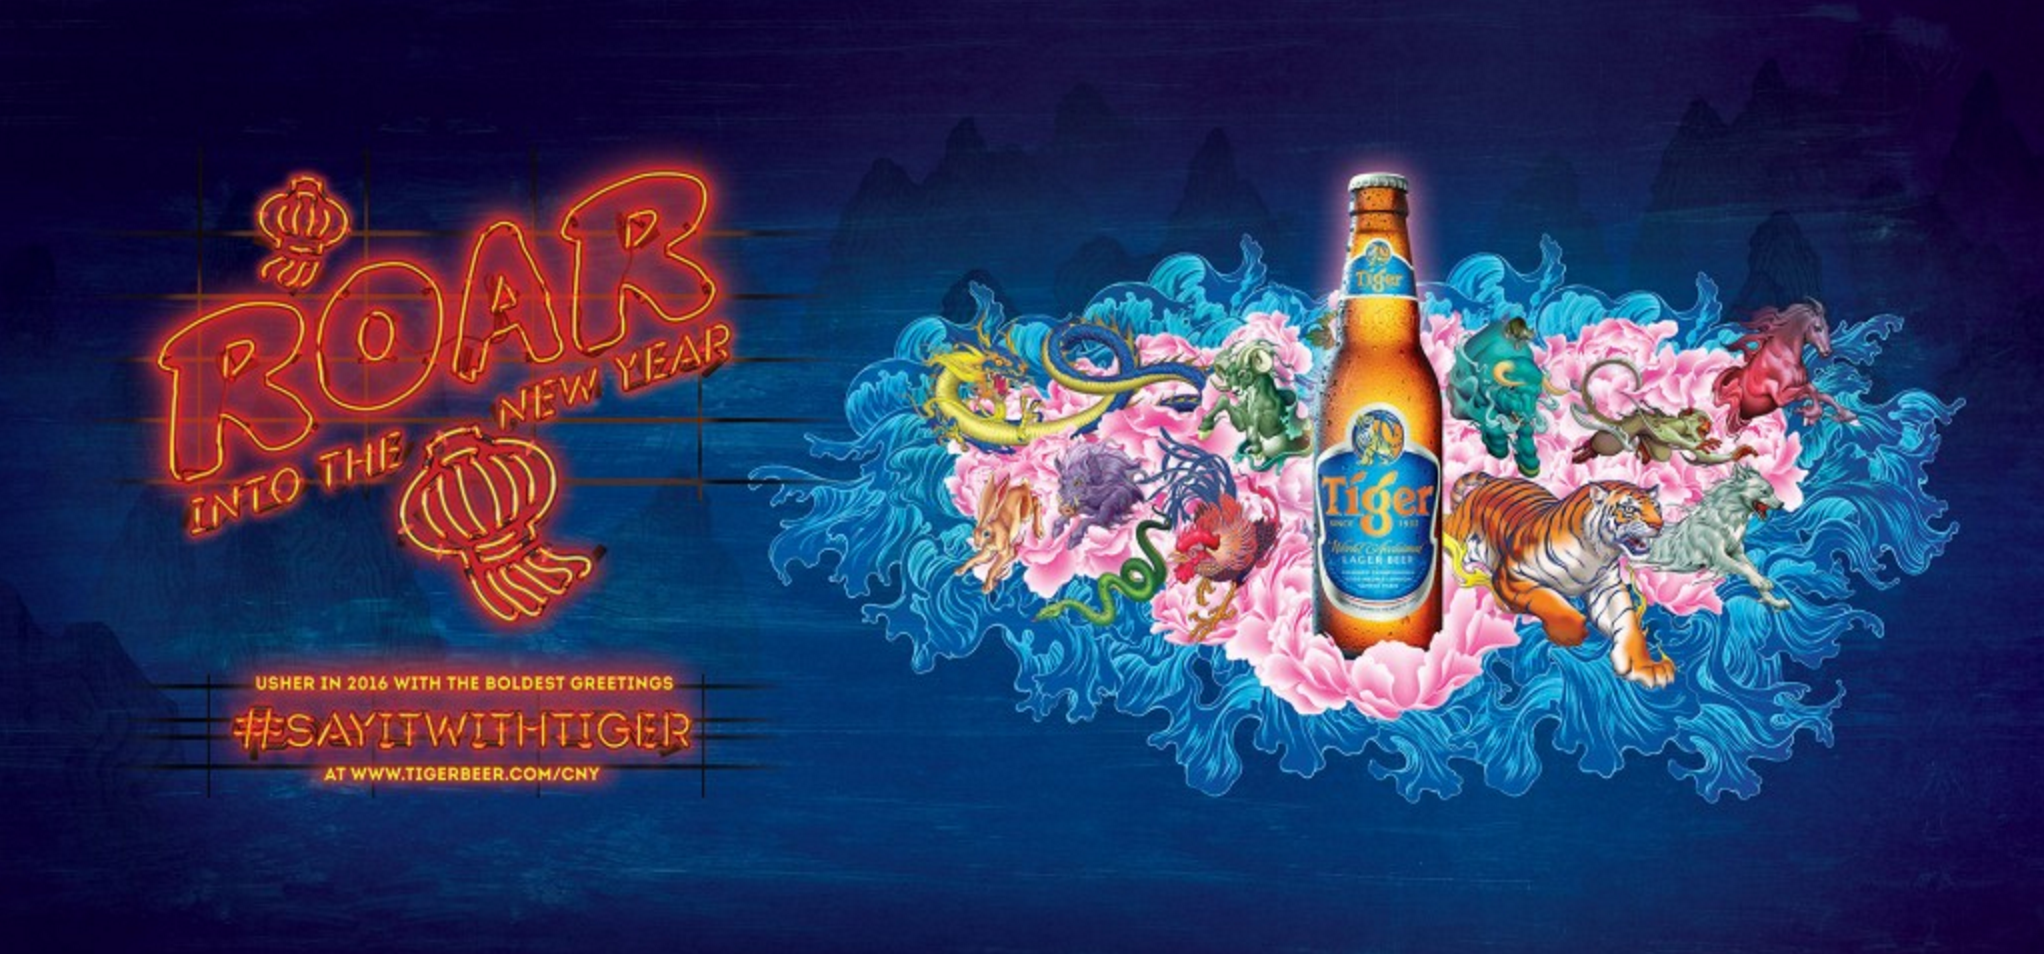 Tiger Beer – Chinese New Year